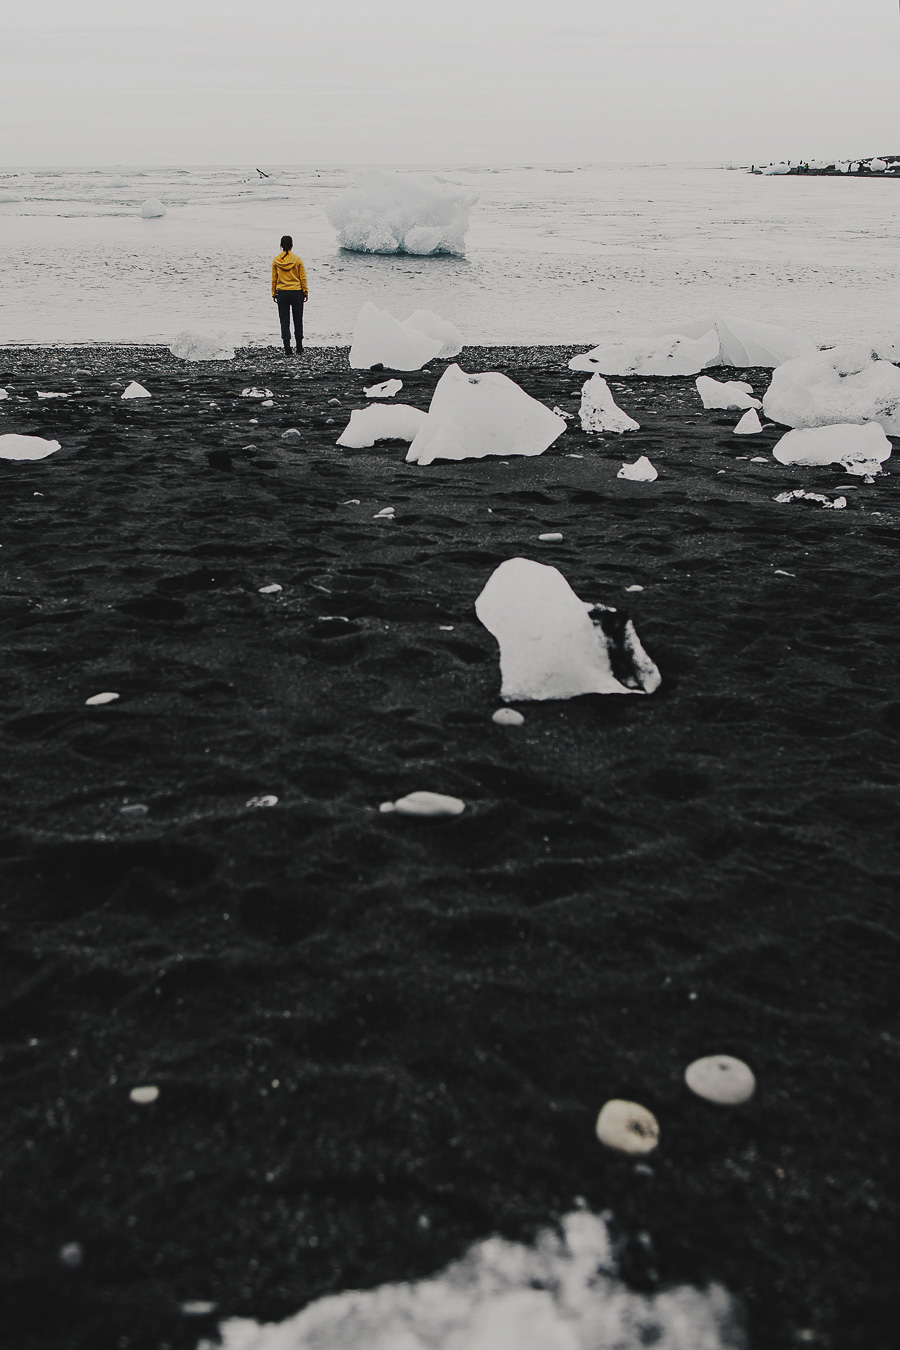 Girl in a yellow jacket standing by blocks of ice